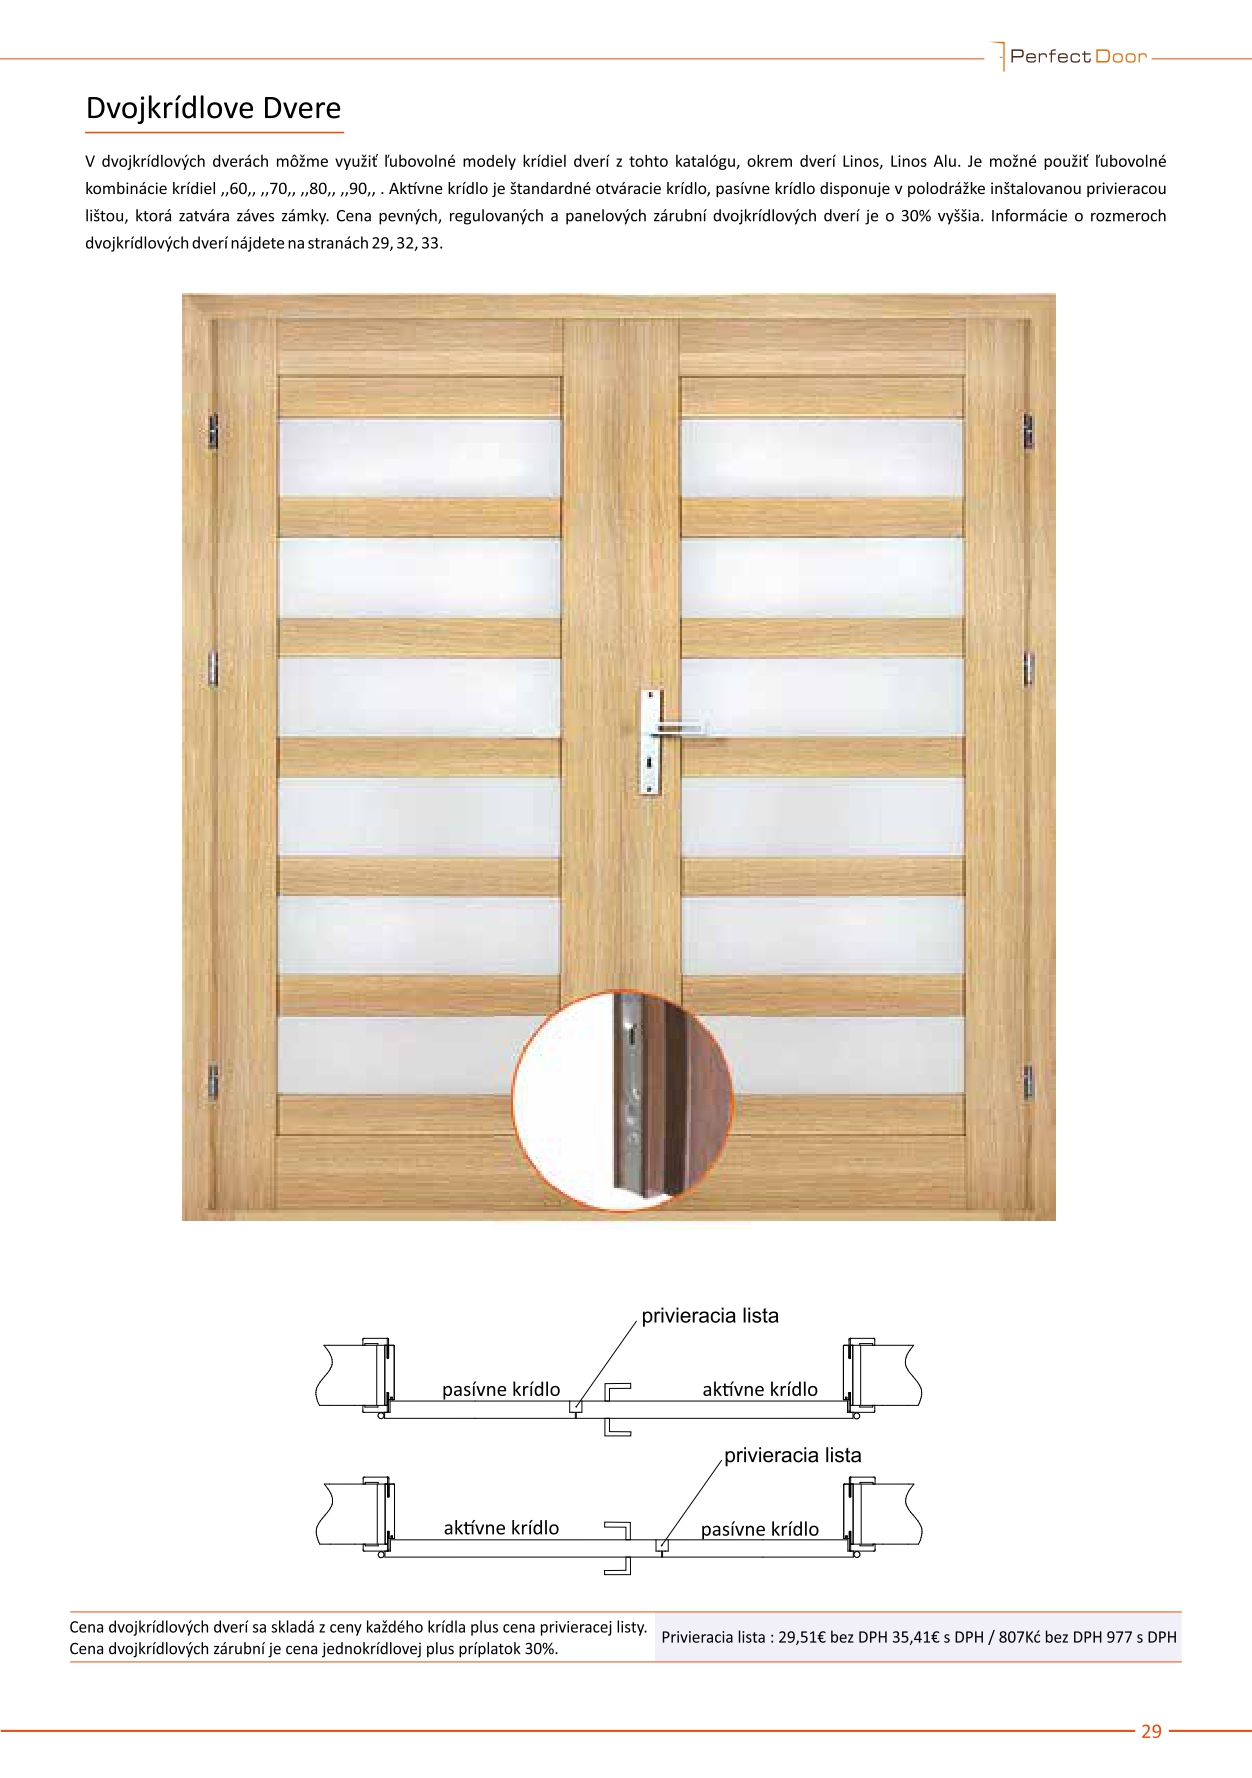 Perfectdoor katalog  1 2019 pages-to-jpg-0029